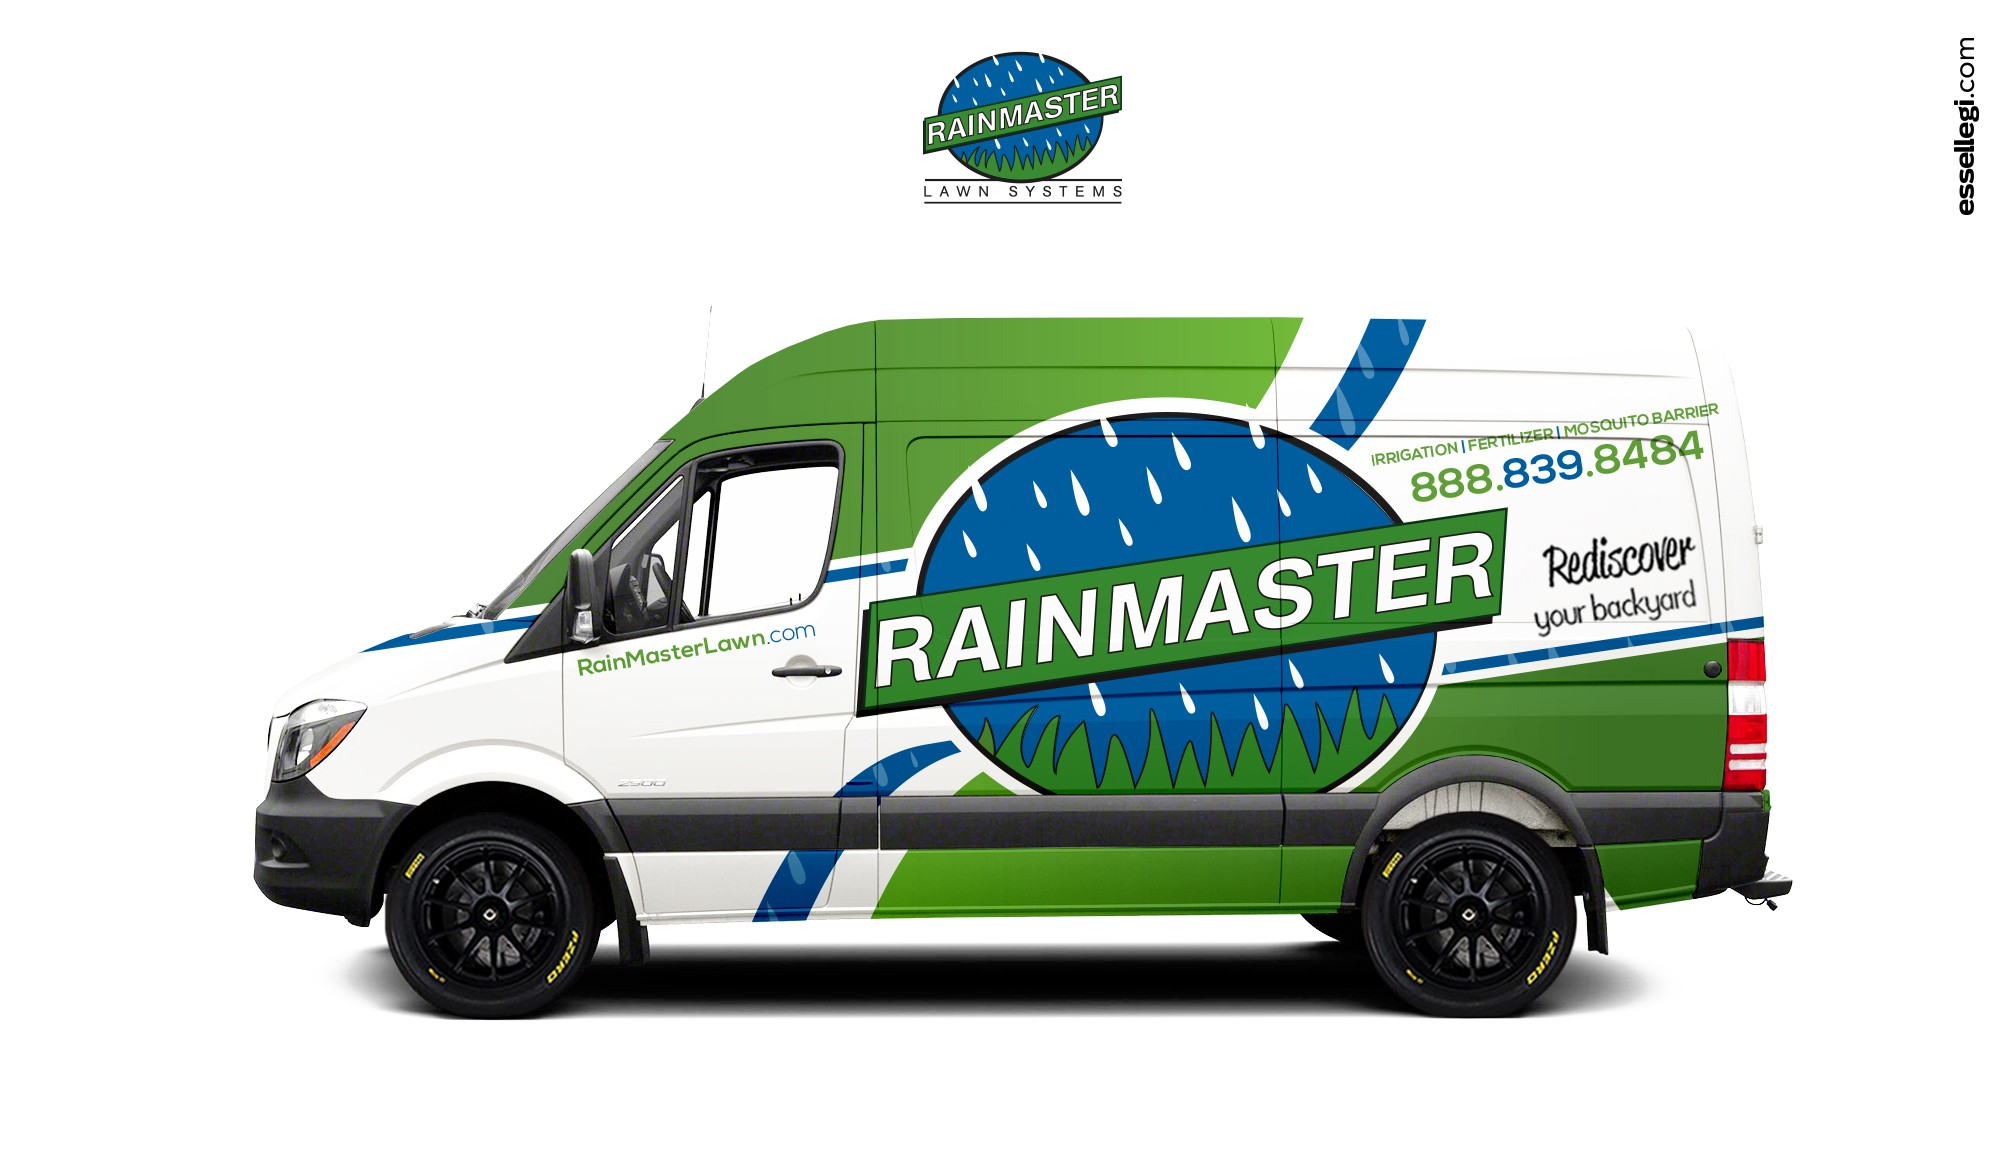 Design a clean vehicle image for our fleet.